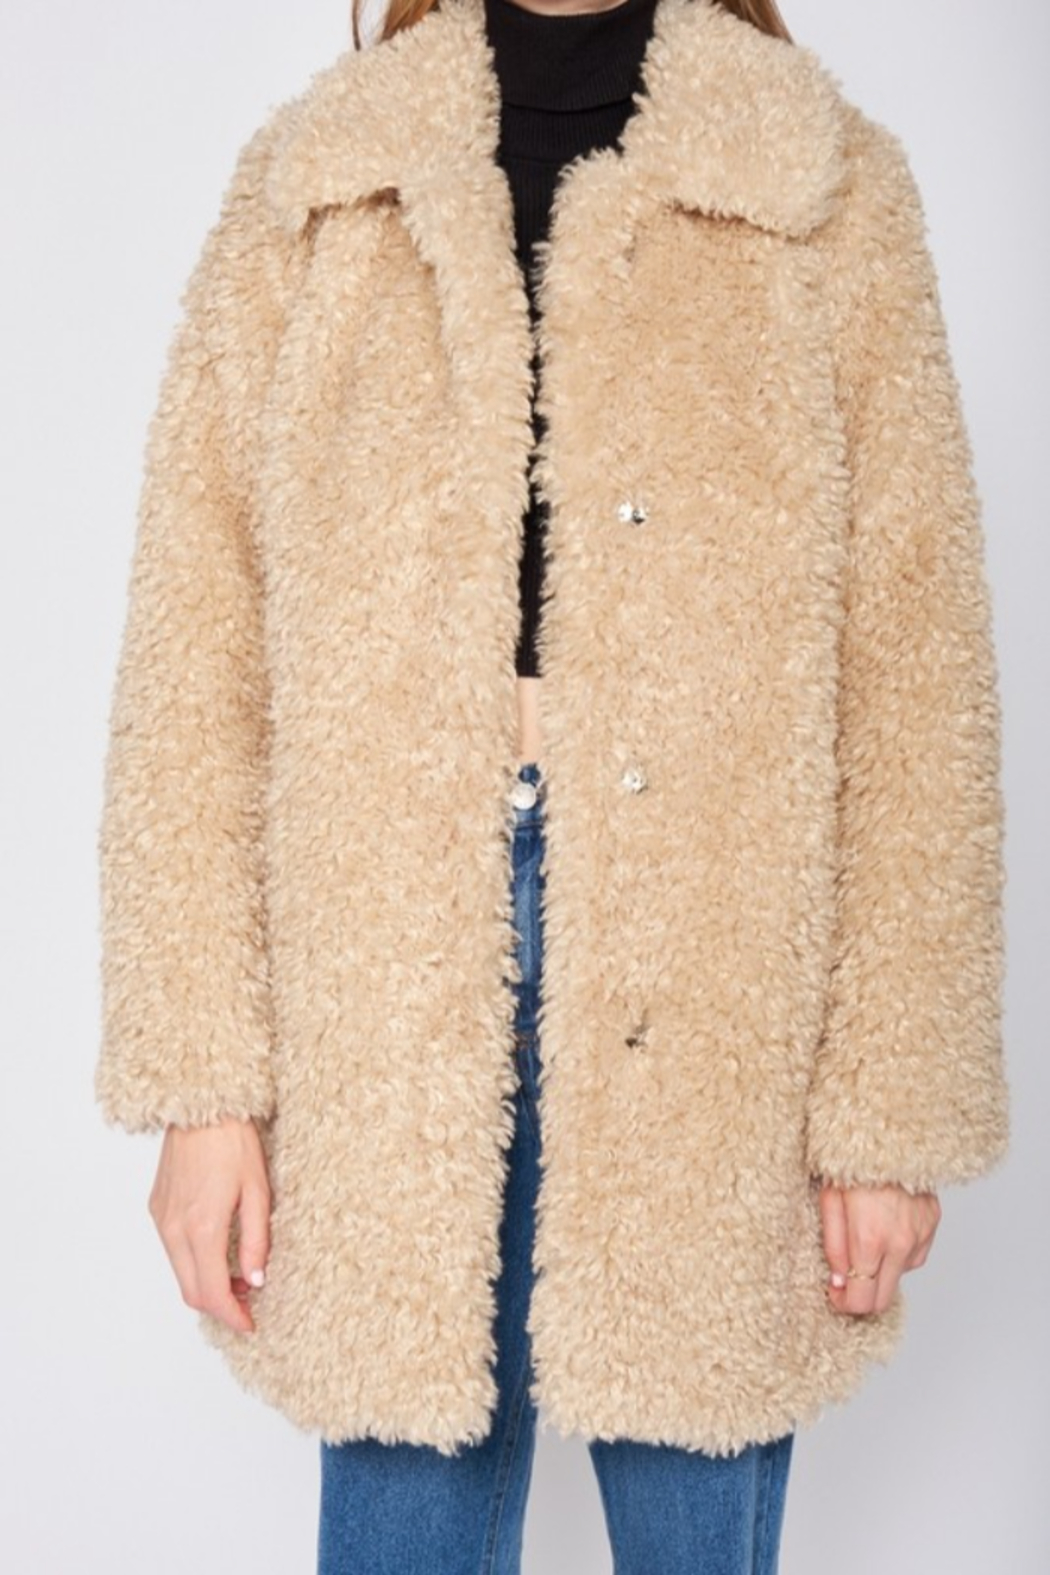 Emory Park Furry Coat with Lapel Collar - Side Cropped Image